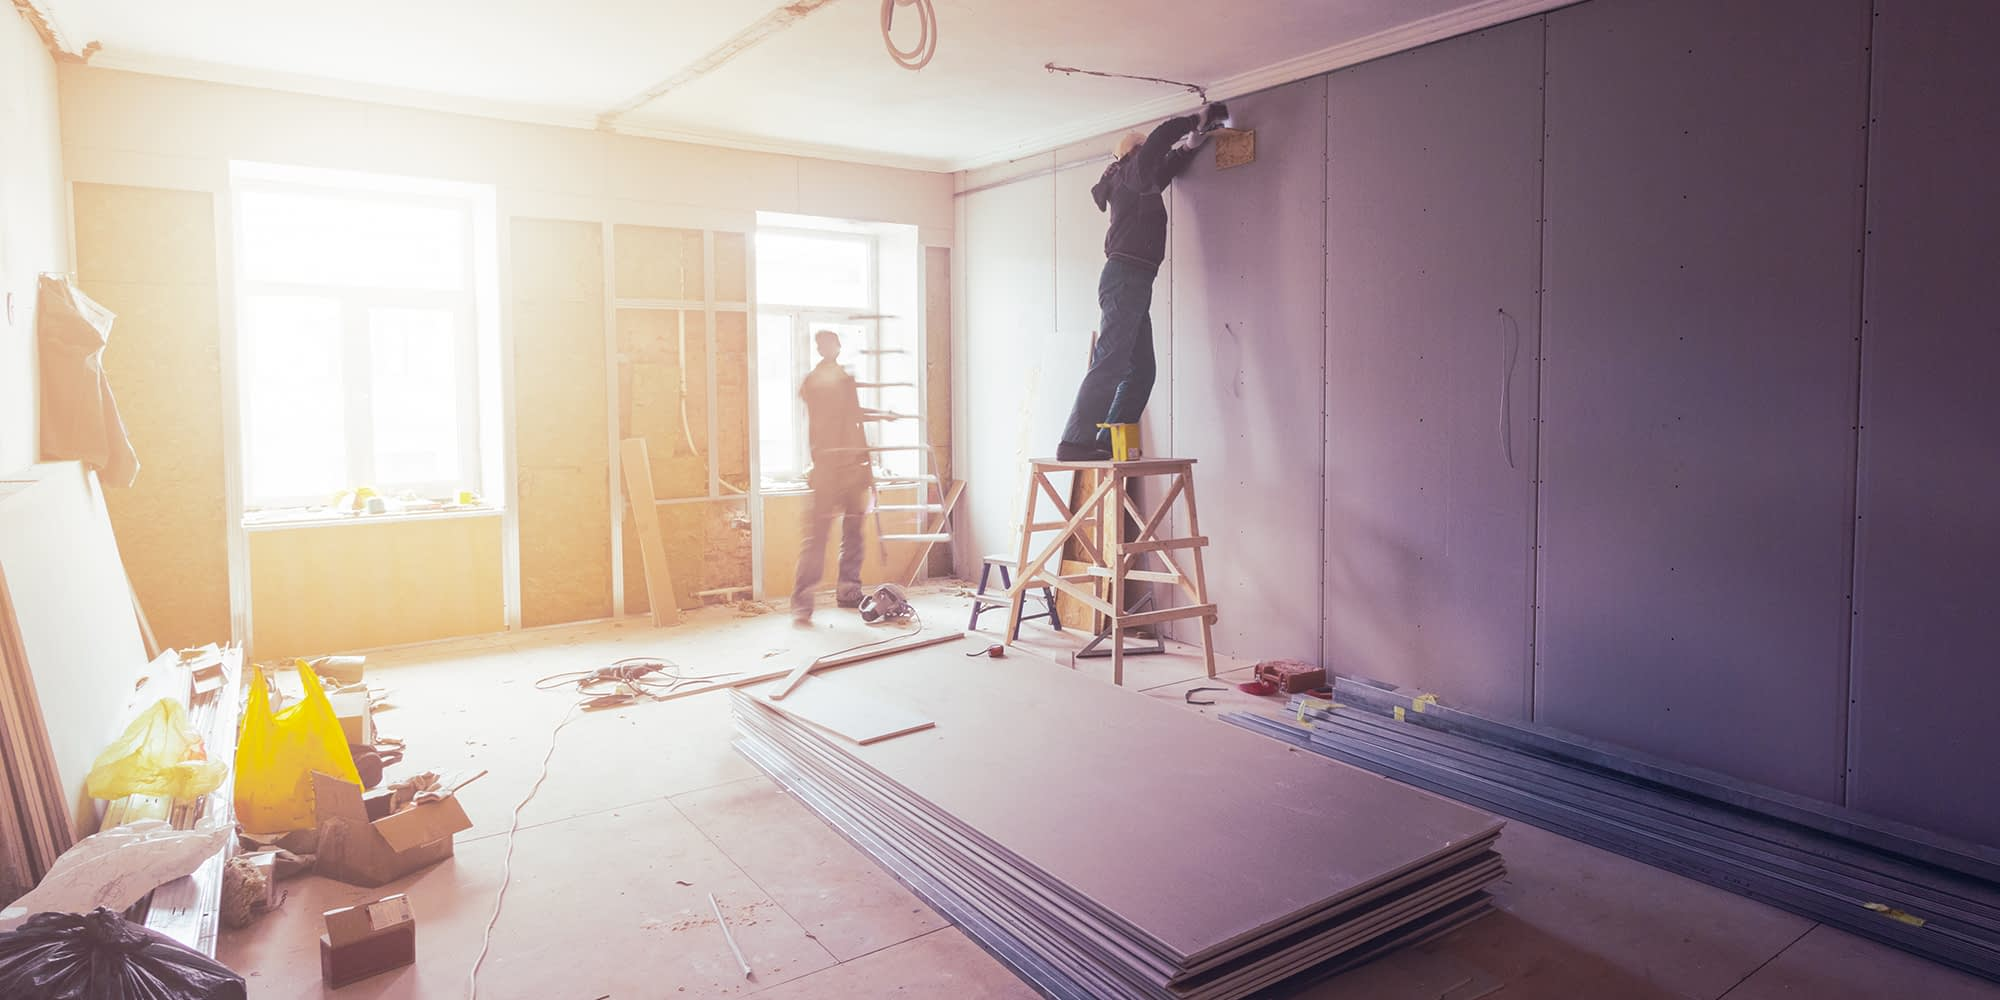 4 areas of liability when taking on a commercial property